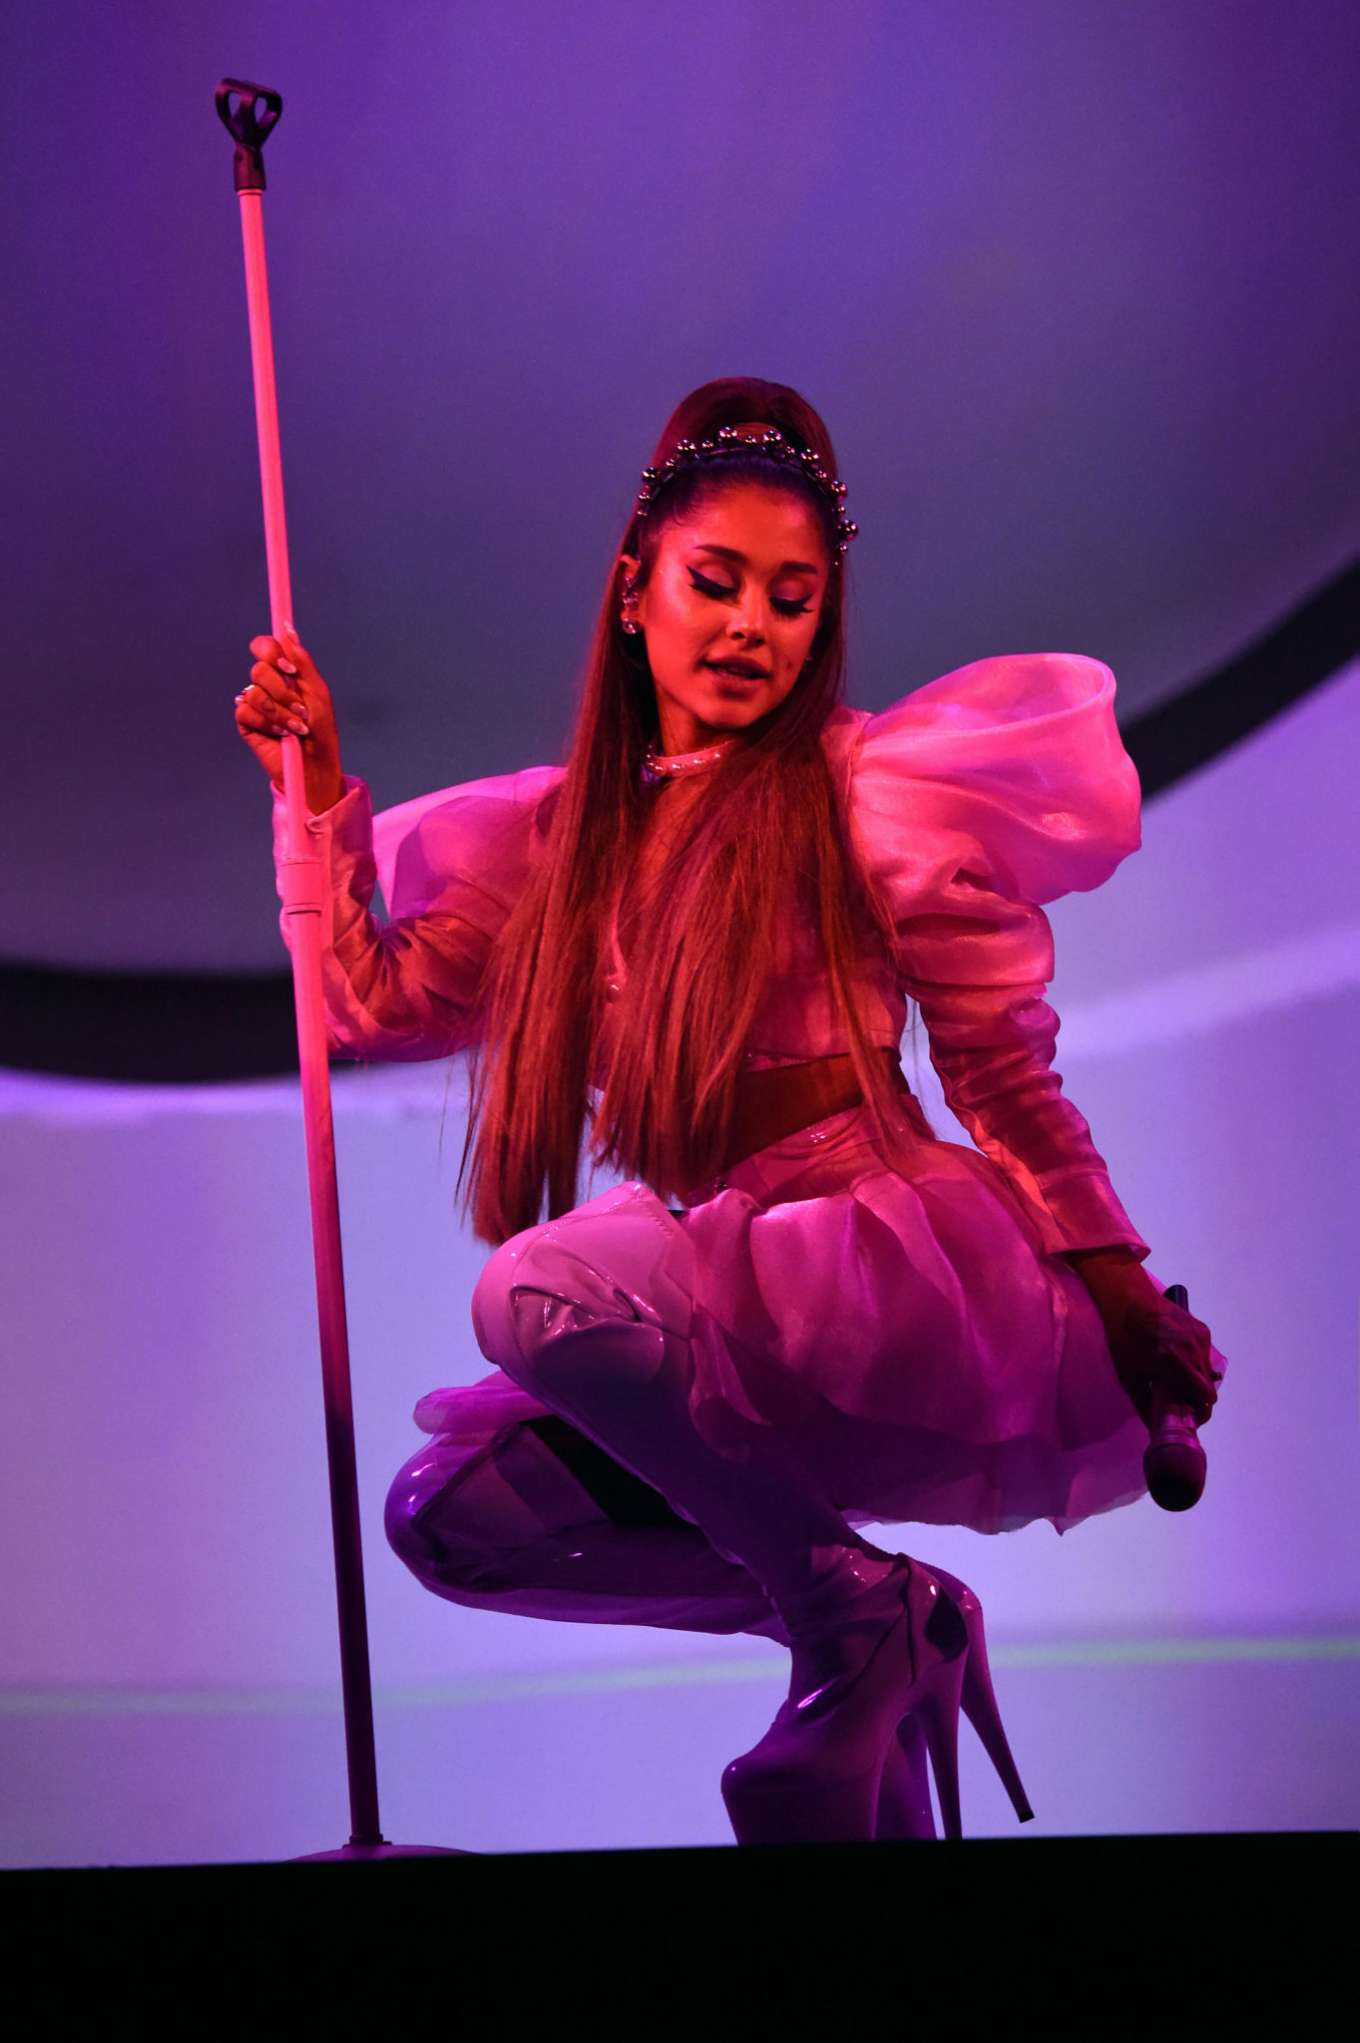 Ariana Grande - Performs on stage during Sweetener Tour